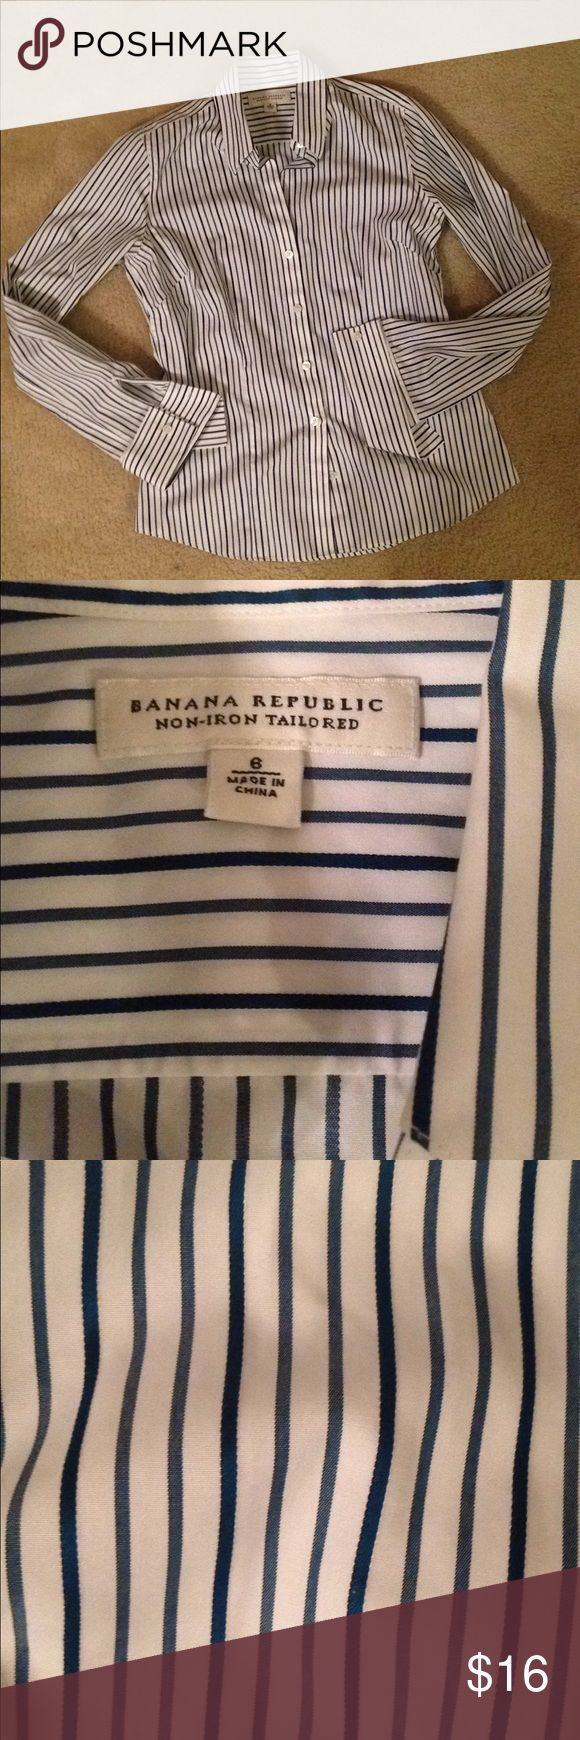 Banana Republic Non-Iron Tailored Shirt Size 6 In great condition. Fitted shirt. 100% Cotton. Second photo is to show color of the stripes. Minor coffee stain pictured in last photos. Offers welcome! Banana Republic Tops Button Down Shirts